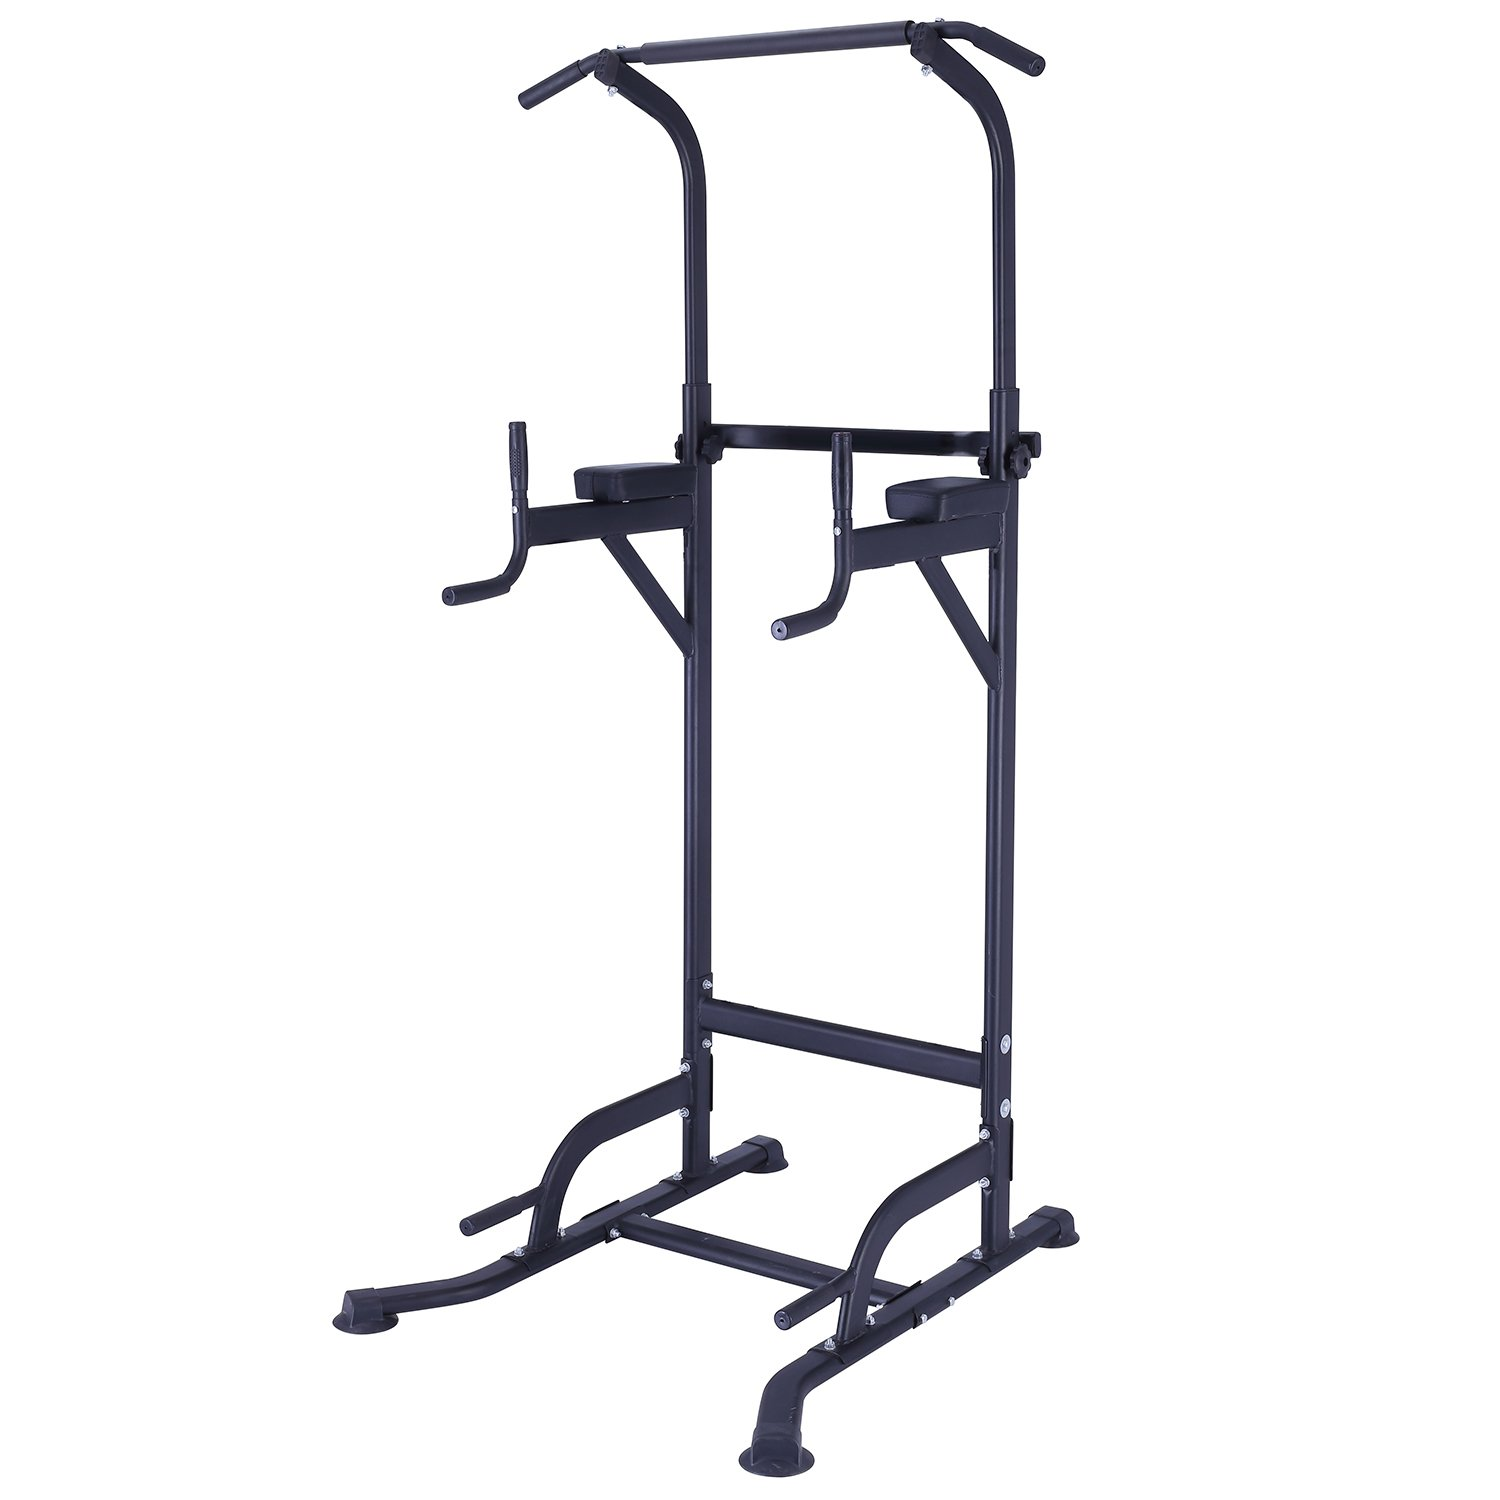 KiNGKANG Power Tower Adjustable Height Multi-Function Home Strength Training Fitness Workout Station, T055